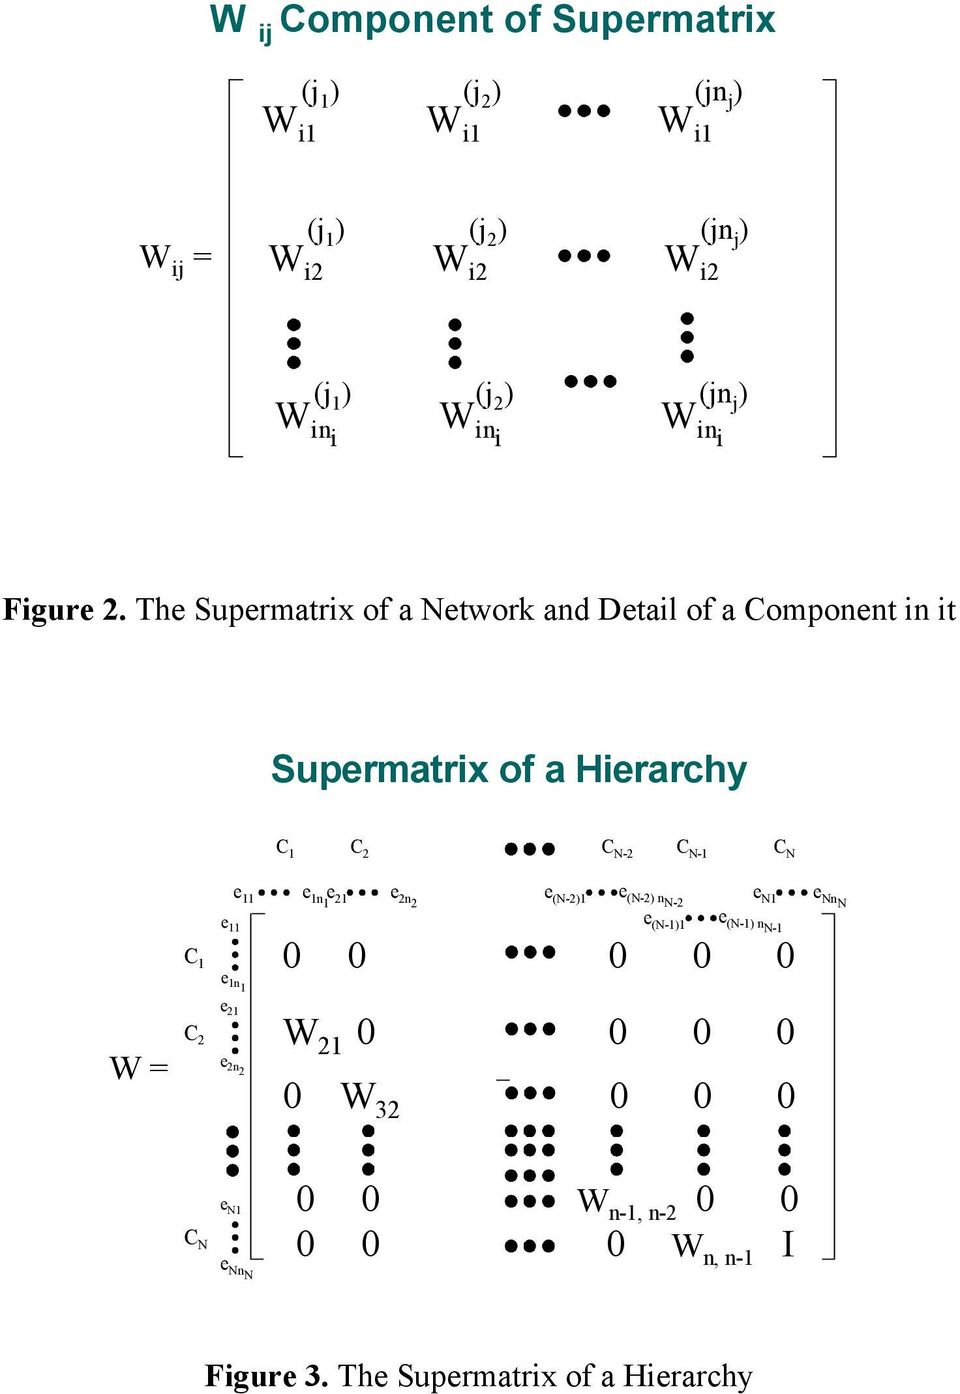 The Supermatrix of a Network and Detail of a Component in it Supermatrix of a Hierarchy C 1 C 2 C N-2 C N-1 C N e (N-2) nn-2 e